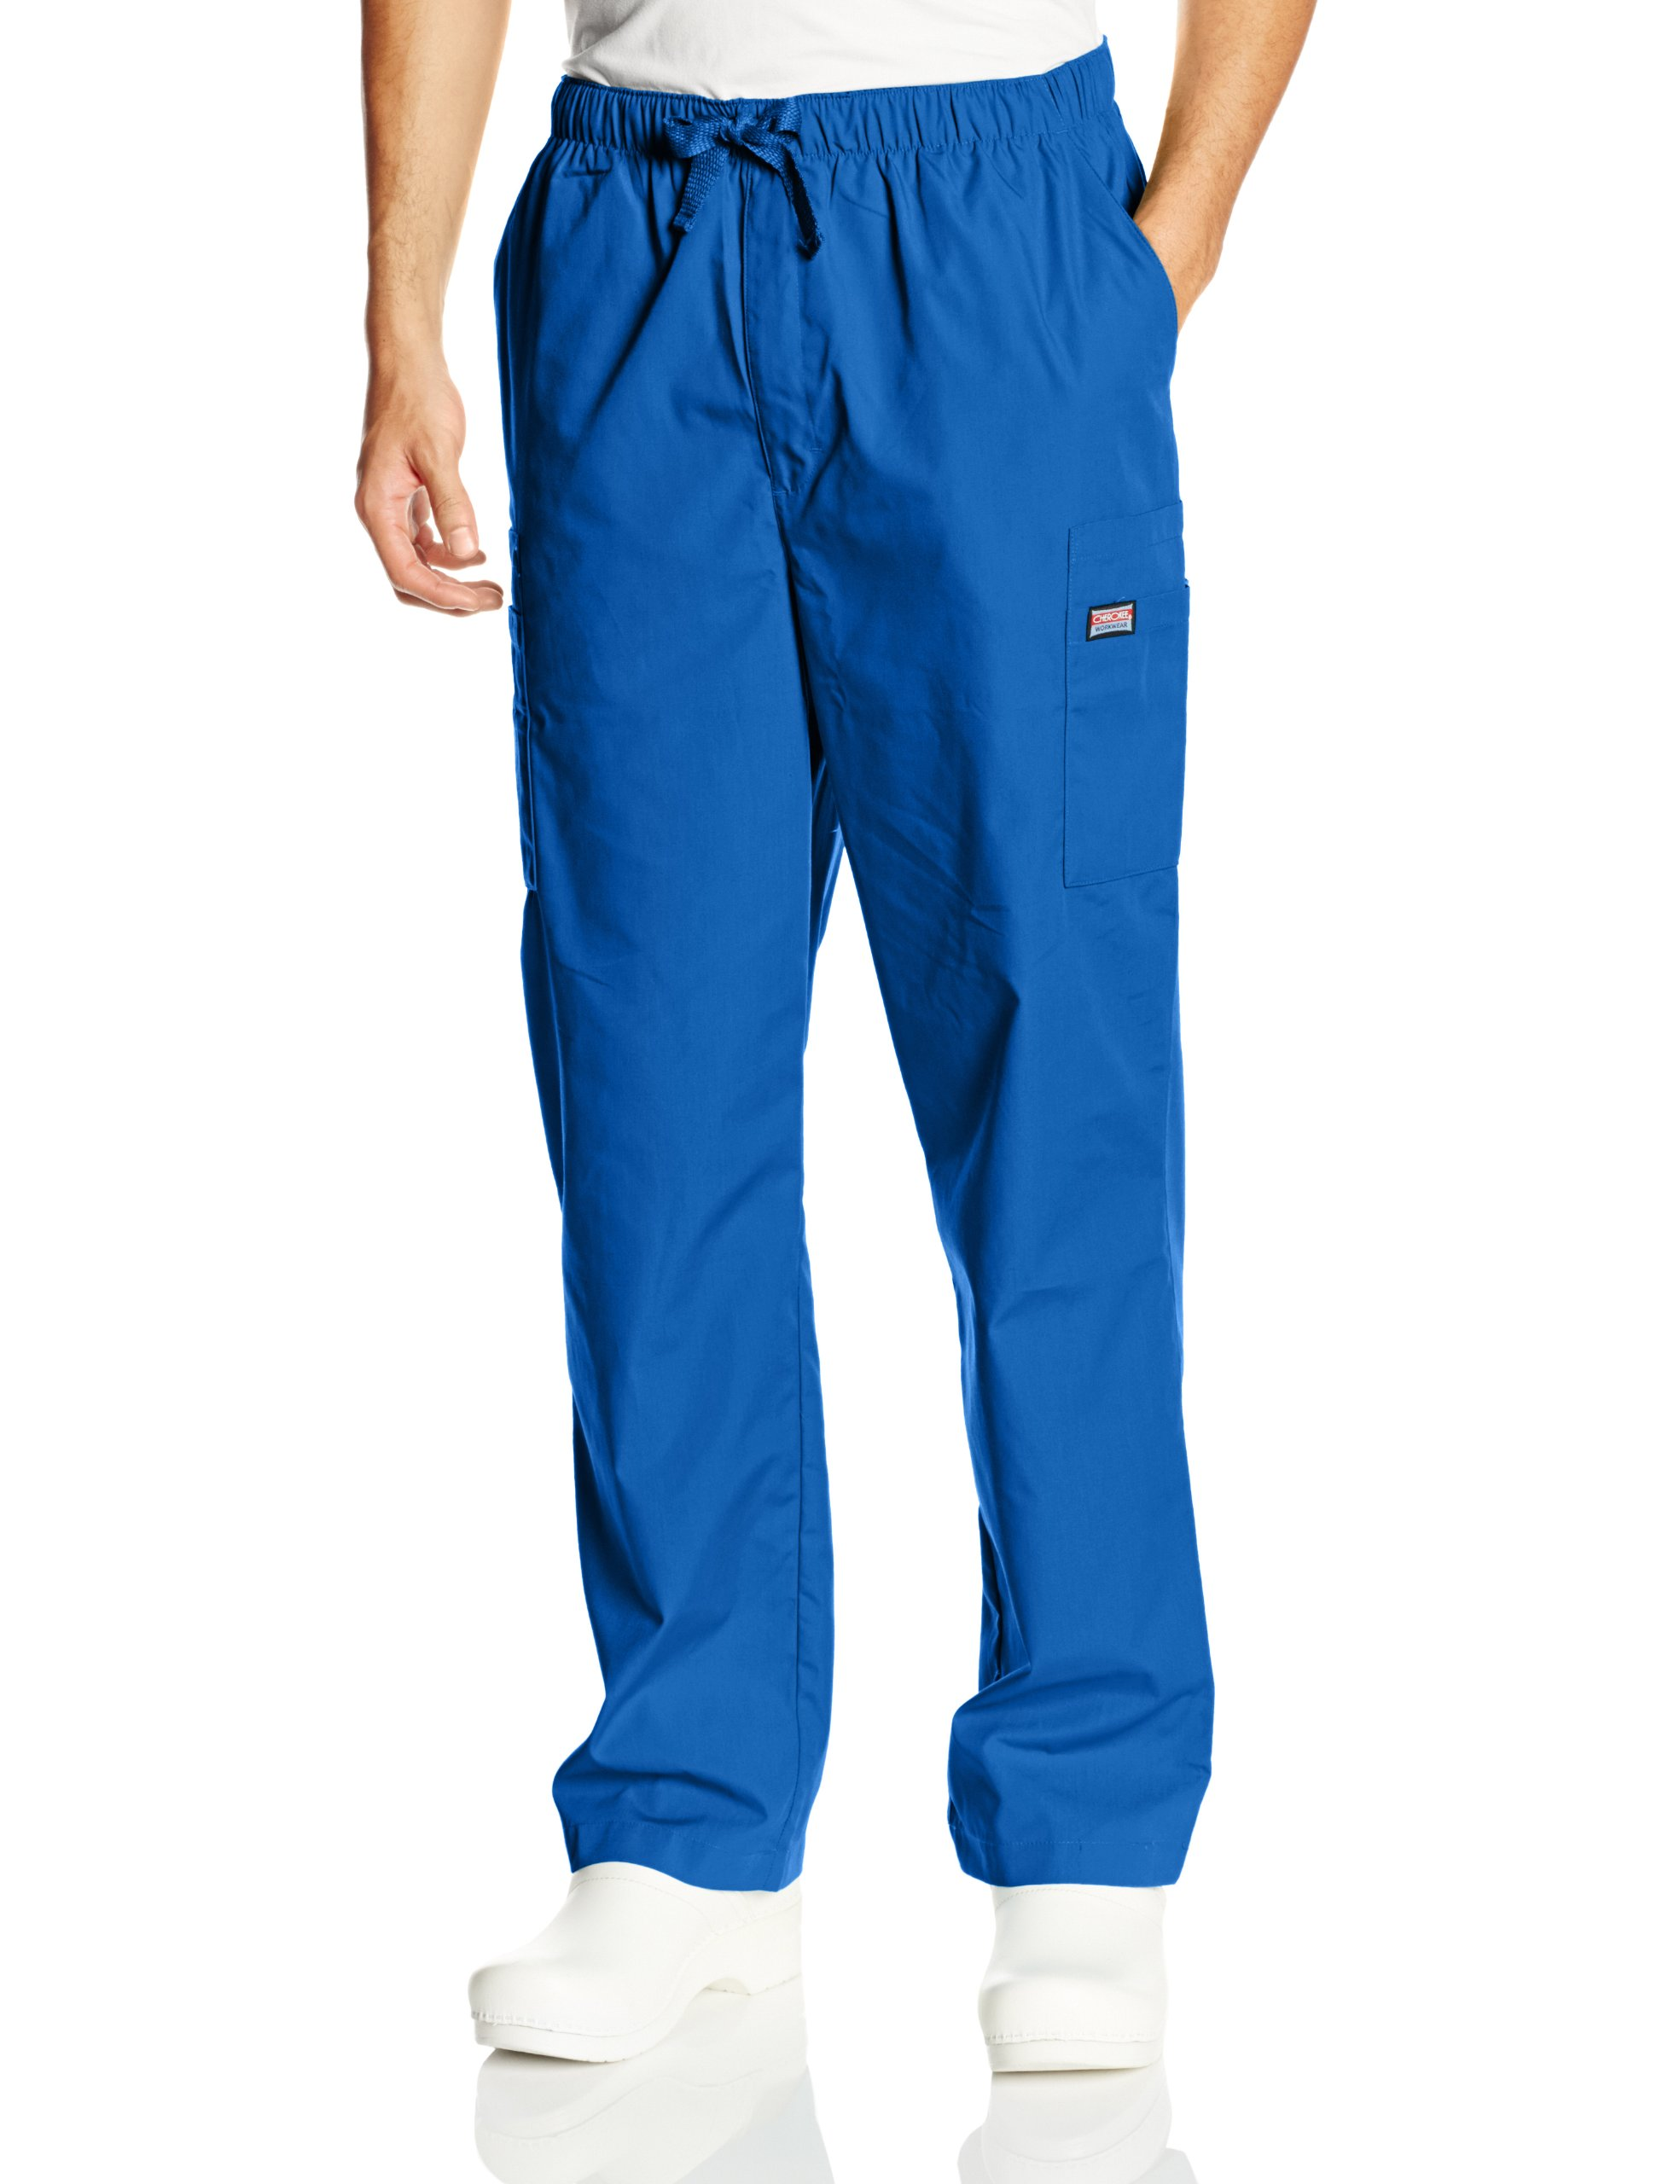 Cherokee Workwear Scrubs Men's Cargo Pant, Royal, Large/Tall